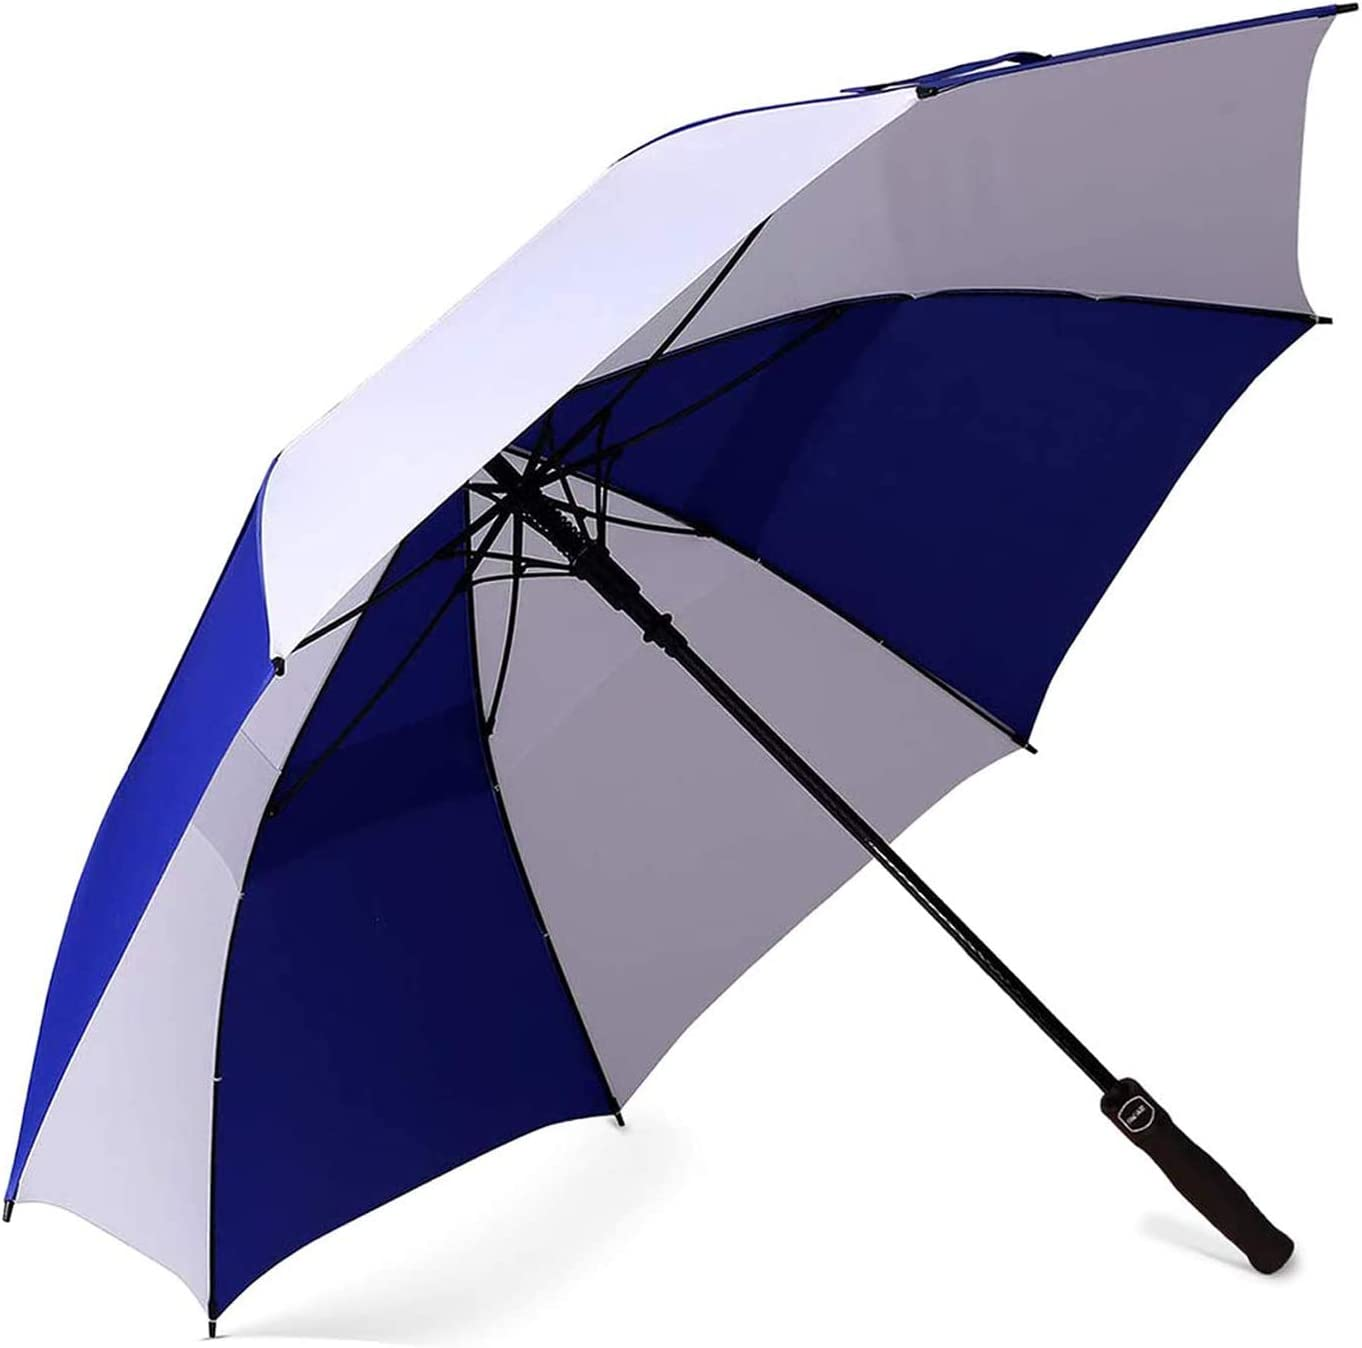 BAGAIL Golf Umbrella 68 Free Shipping New Max 63% OFF 62 58 Large Canopy Double Oversize Inch